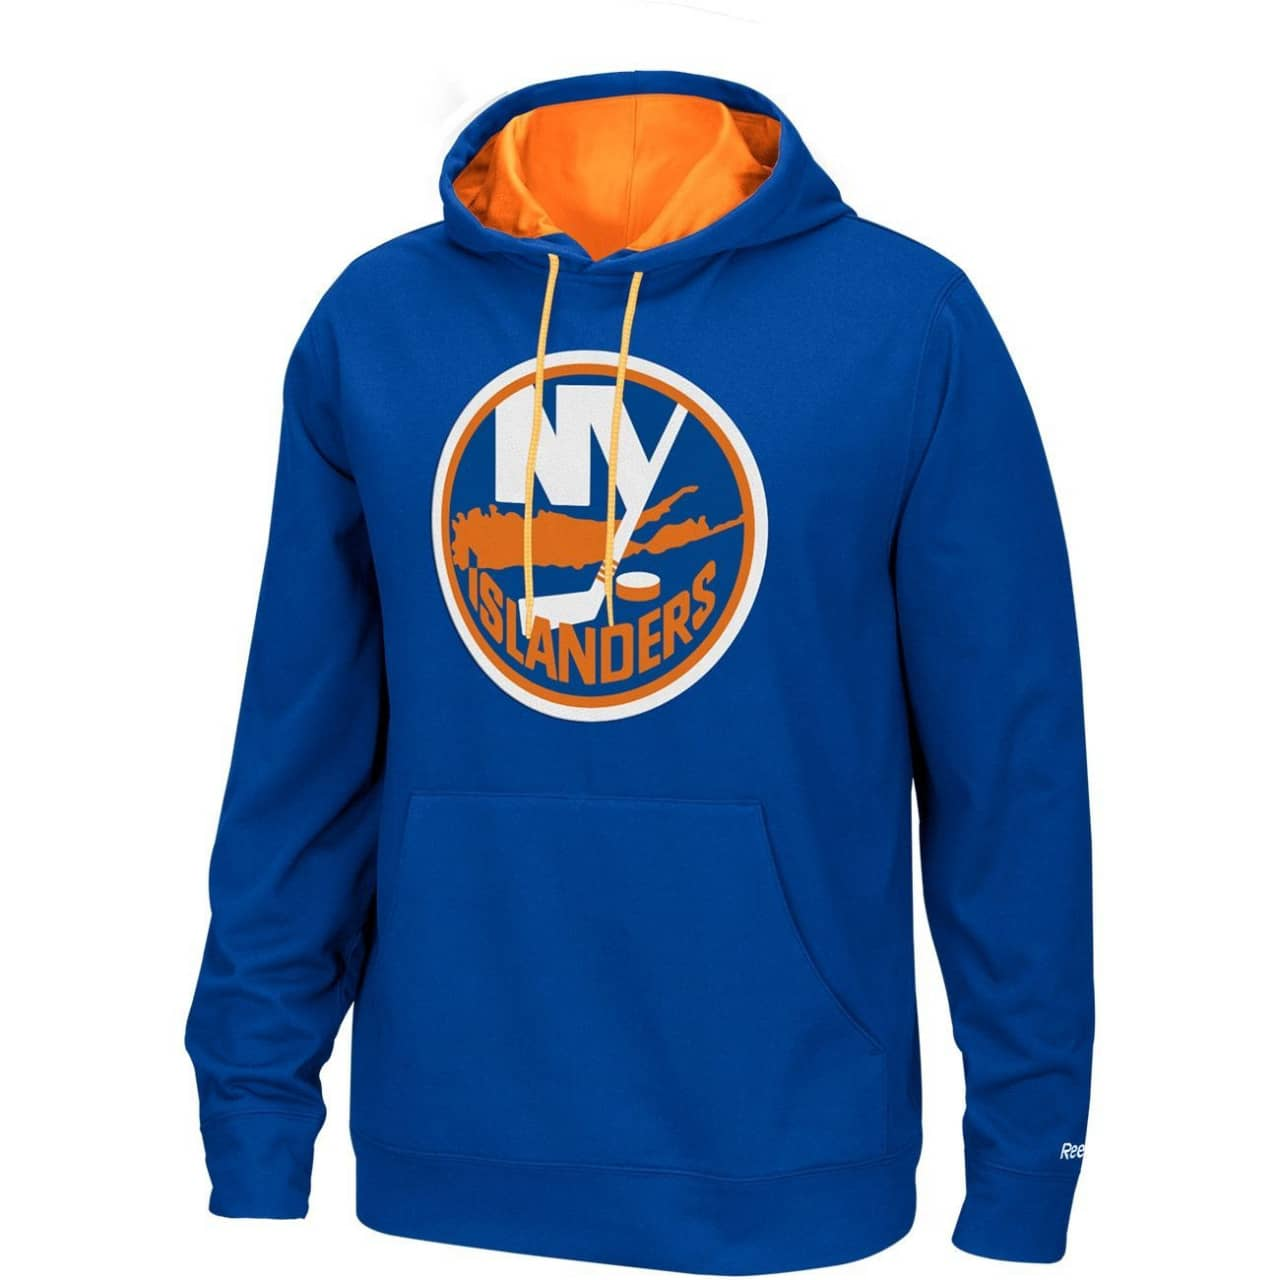 21227cc09 Reebok New York Islanders Playbook Hoodie NHL Sweatshirt